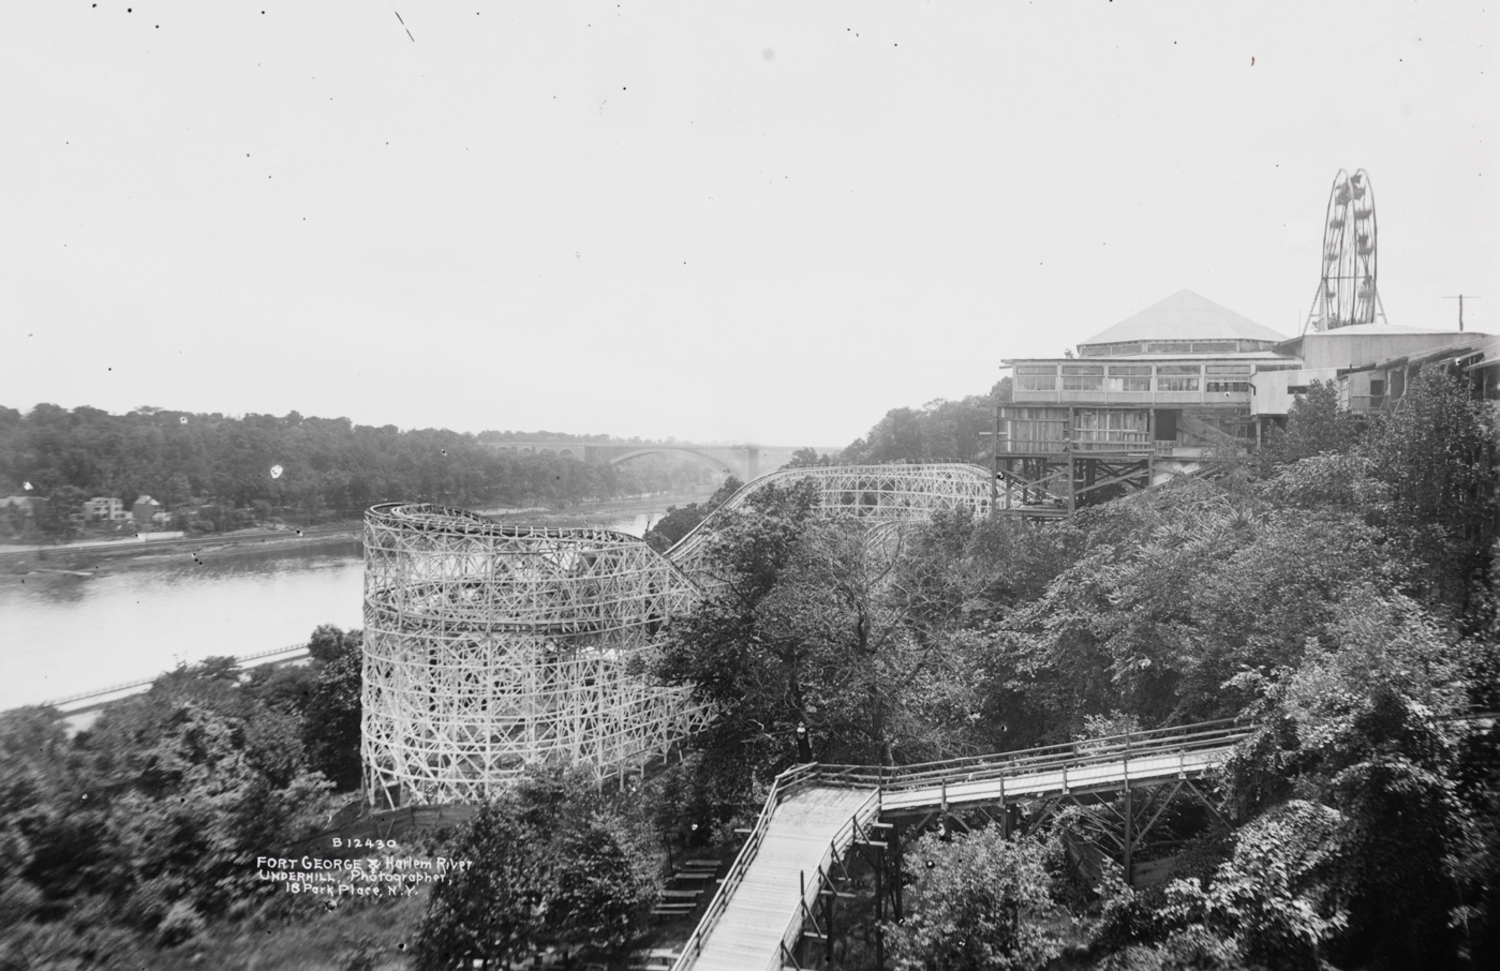 Fort George and Harlem River. ca. 1900.